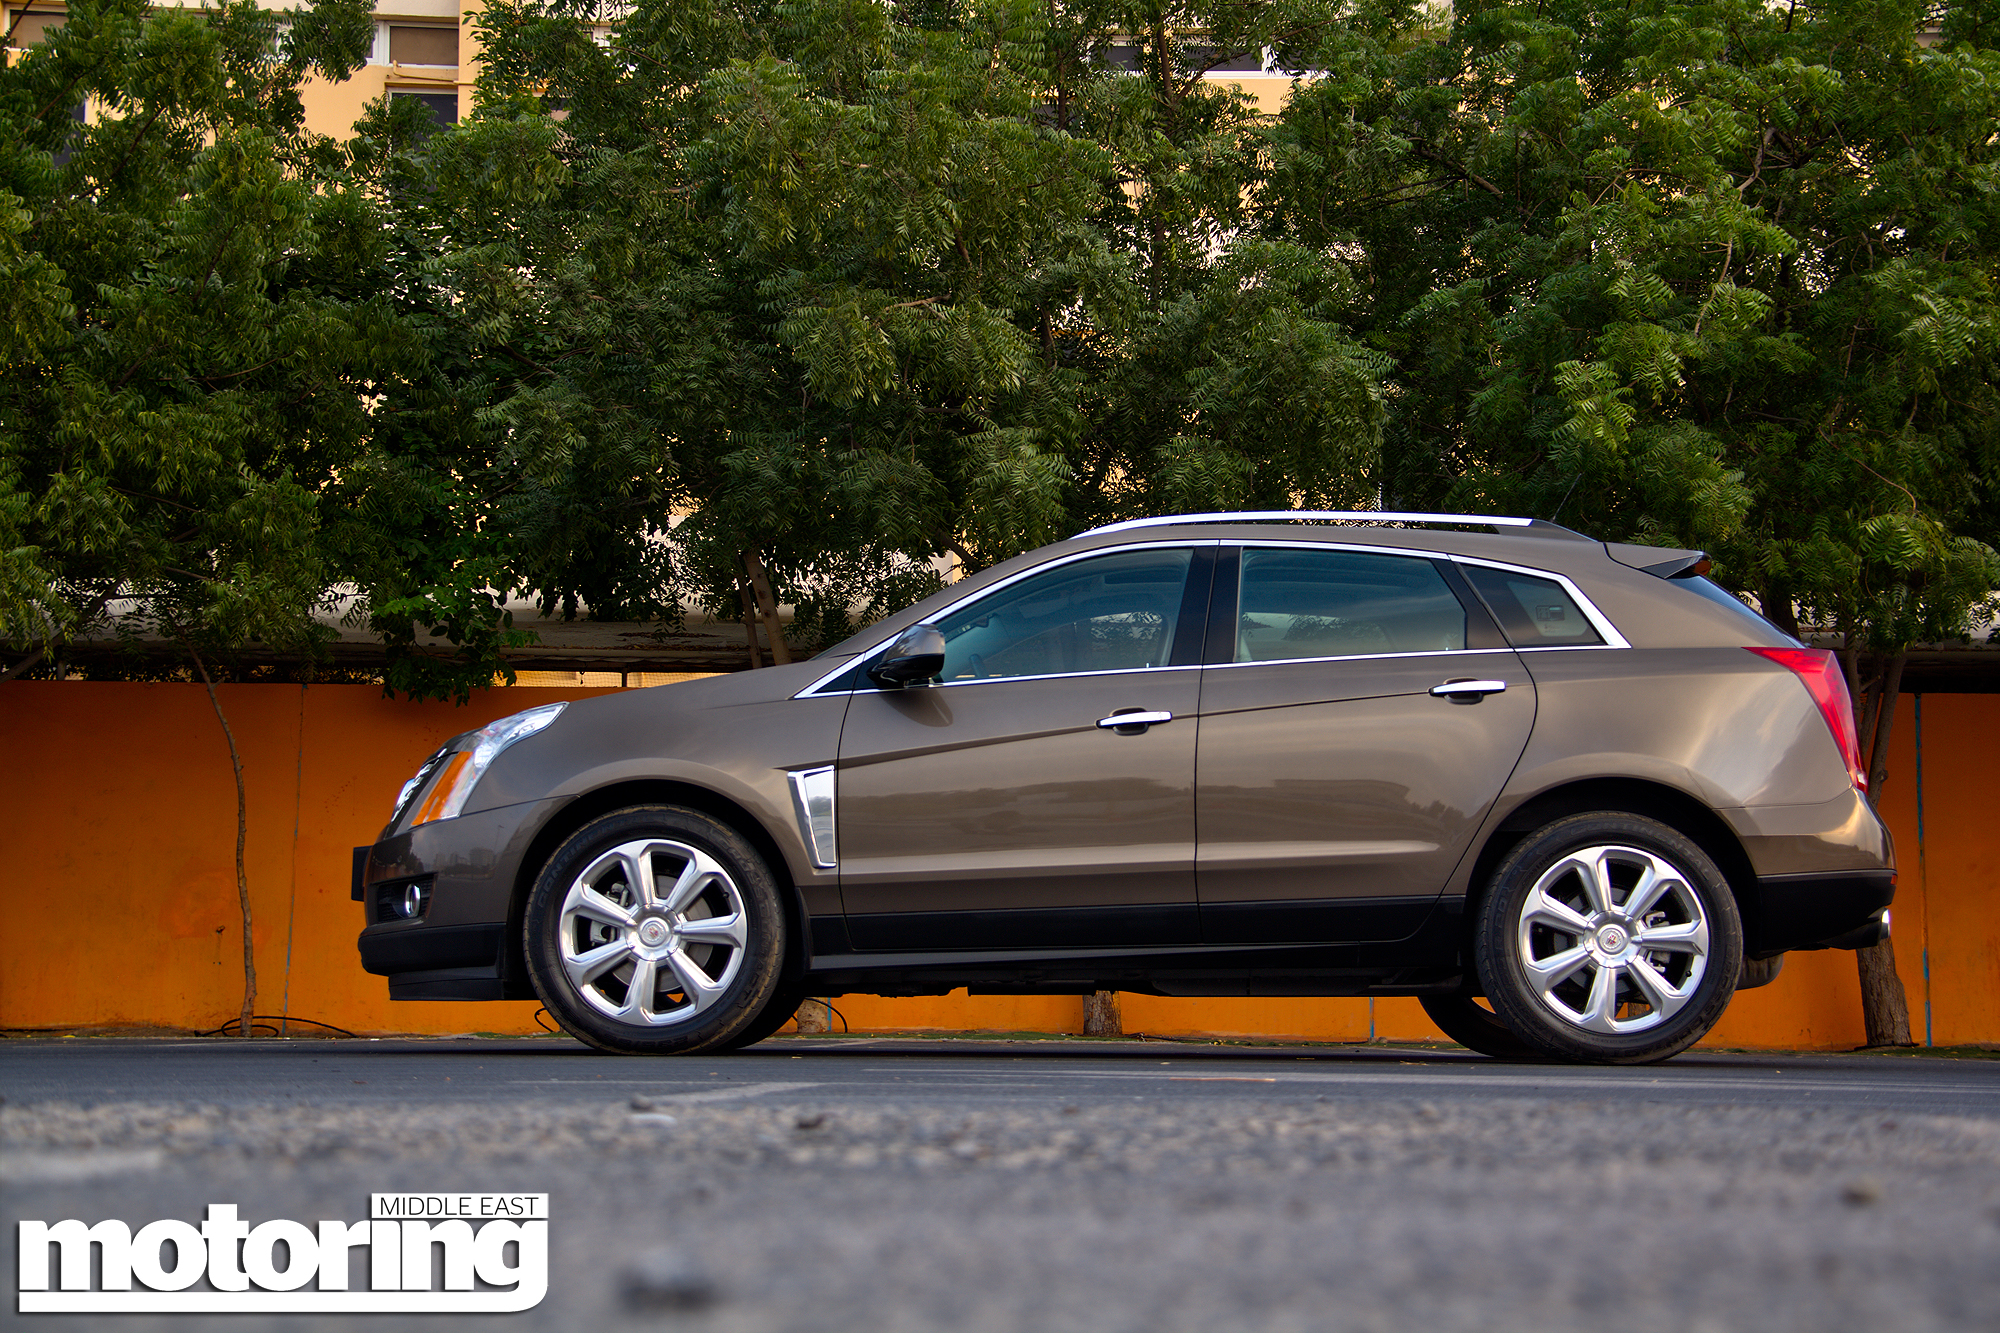 cadillac srx canada cars reviews trunk motor suv trend premium and en rating fwd